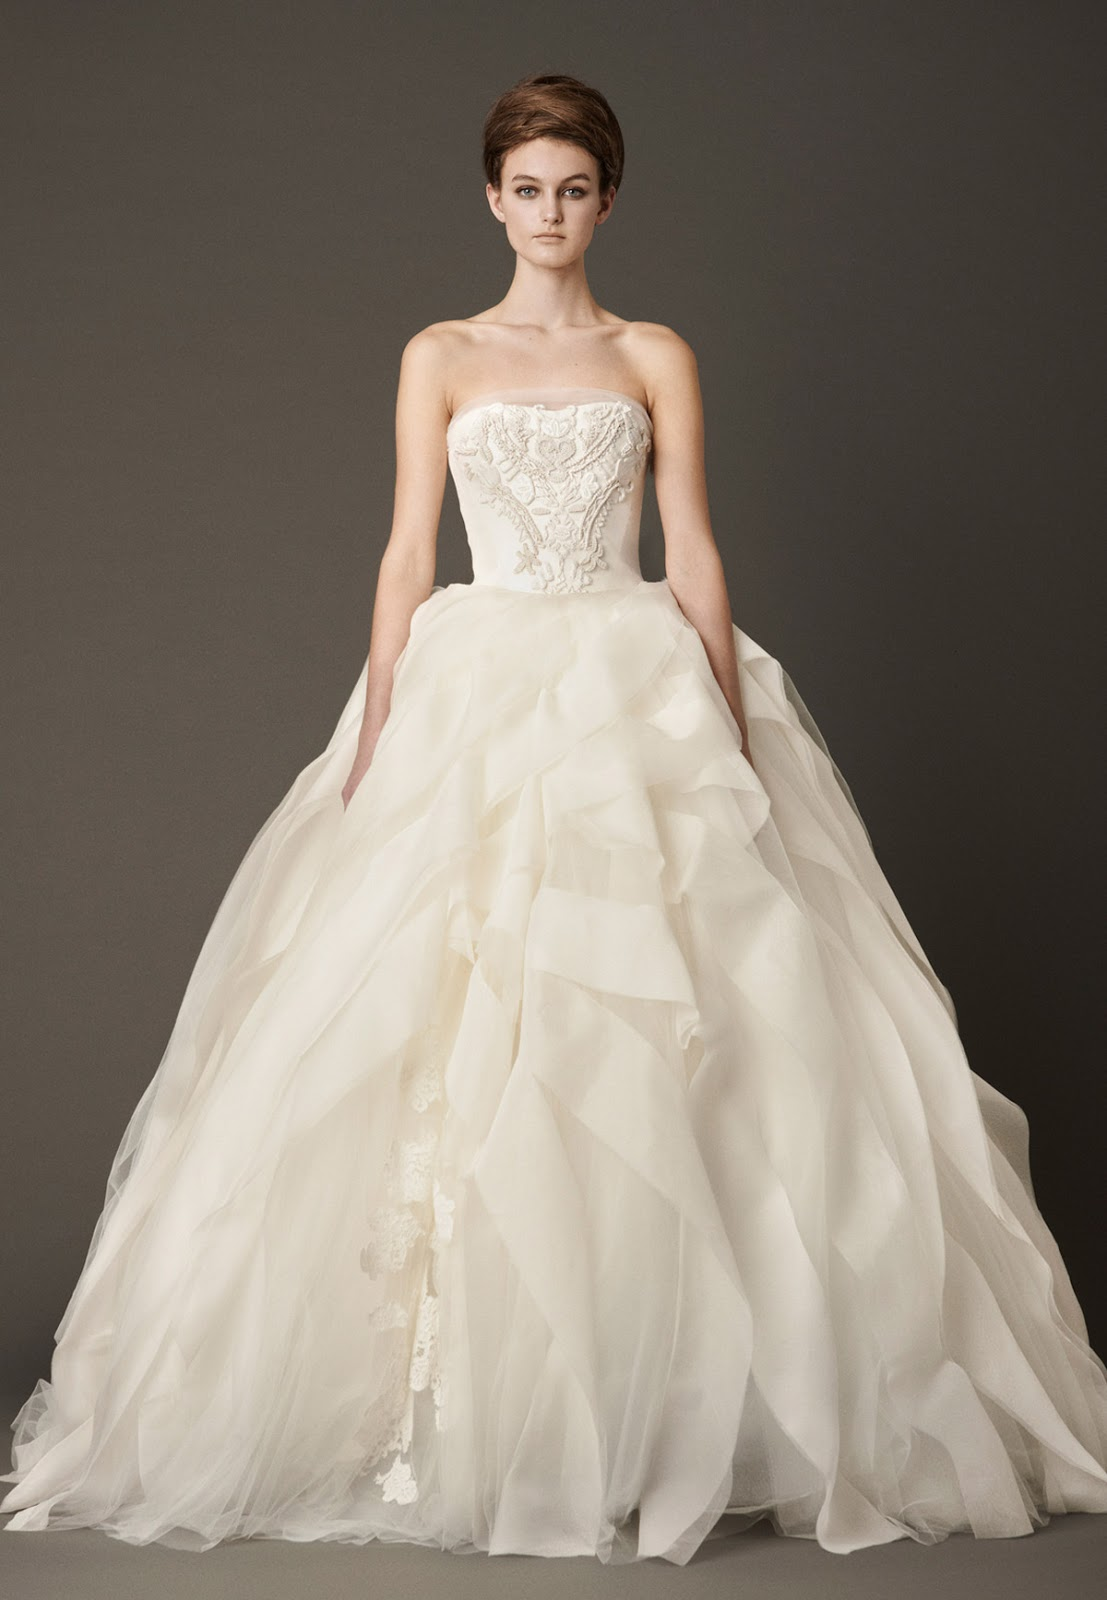 Dressybridal vera wang fall 2013 ruffled wedding gowns for Vera wang princess ball gown wedding dress